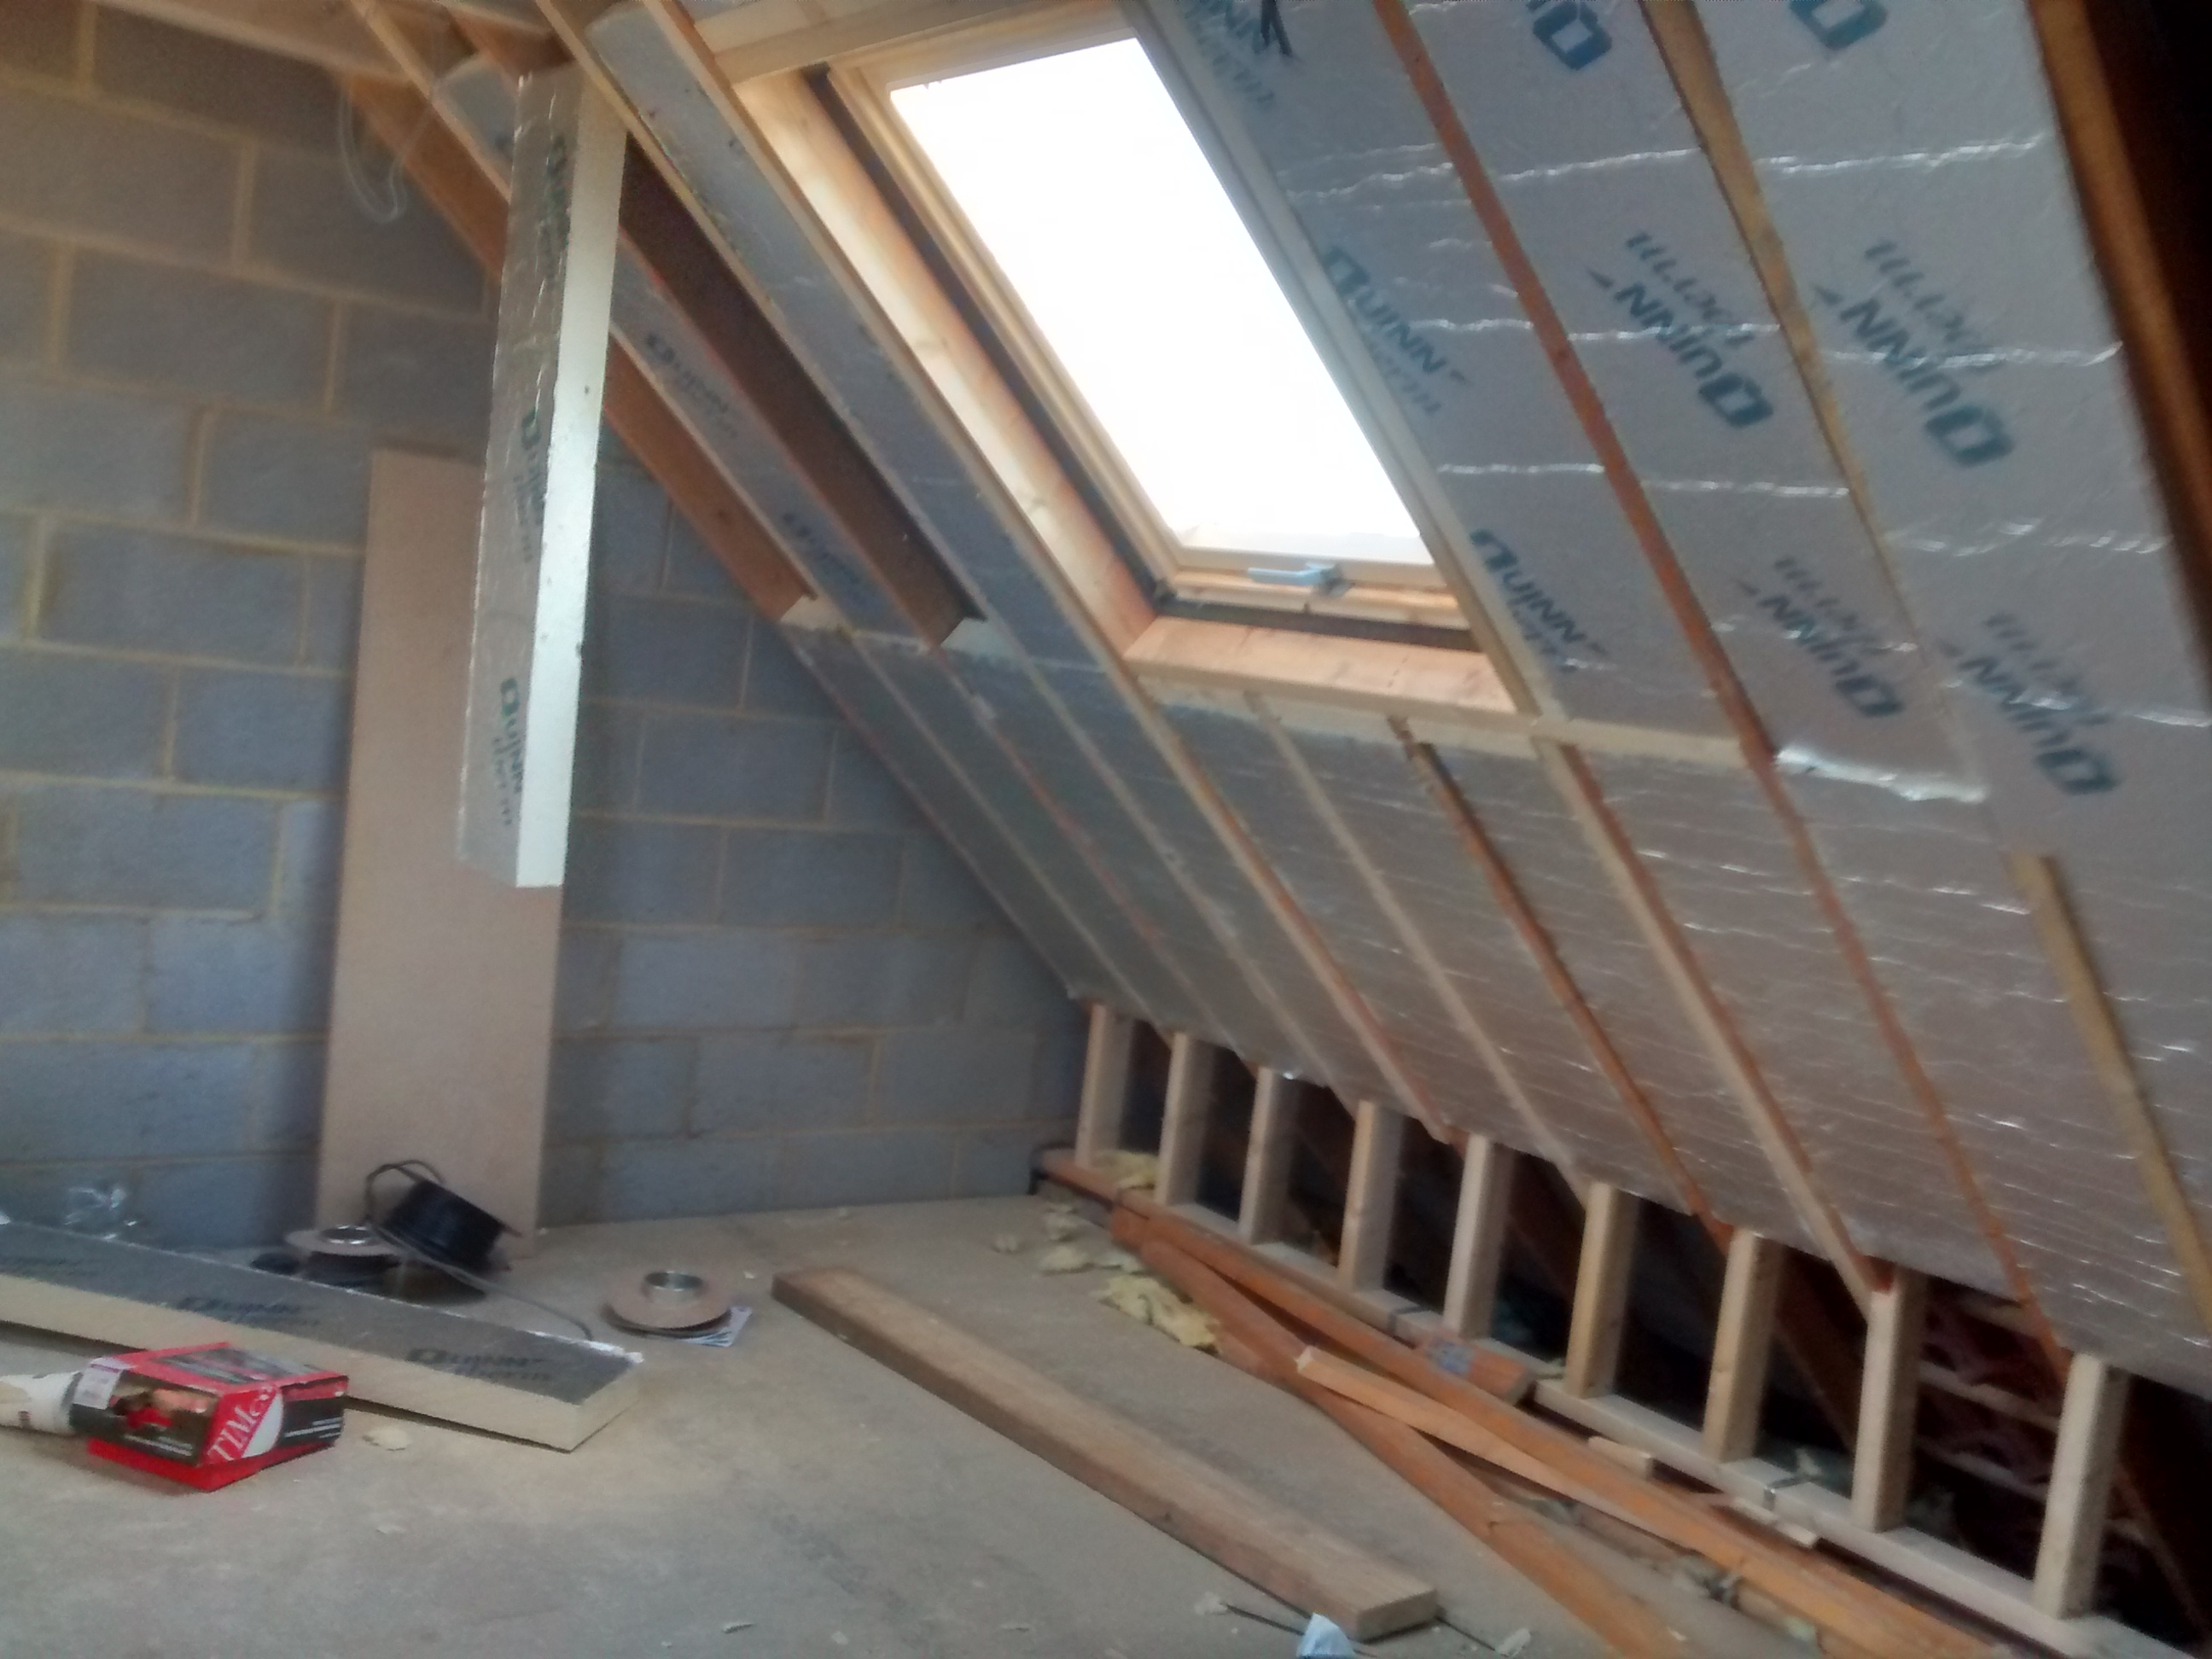 QuinnTherm insulation in roof